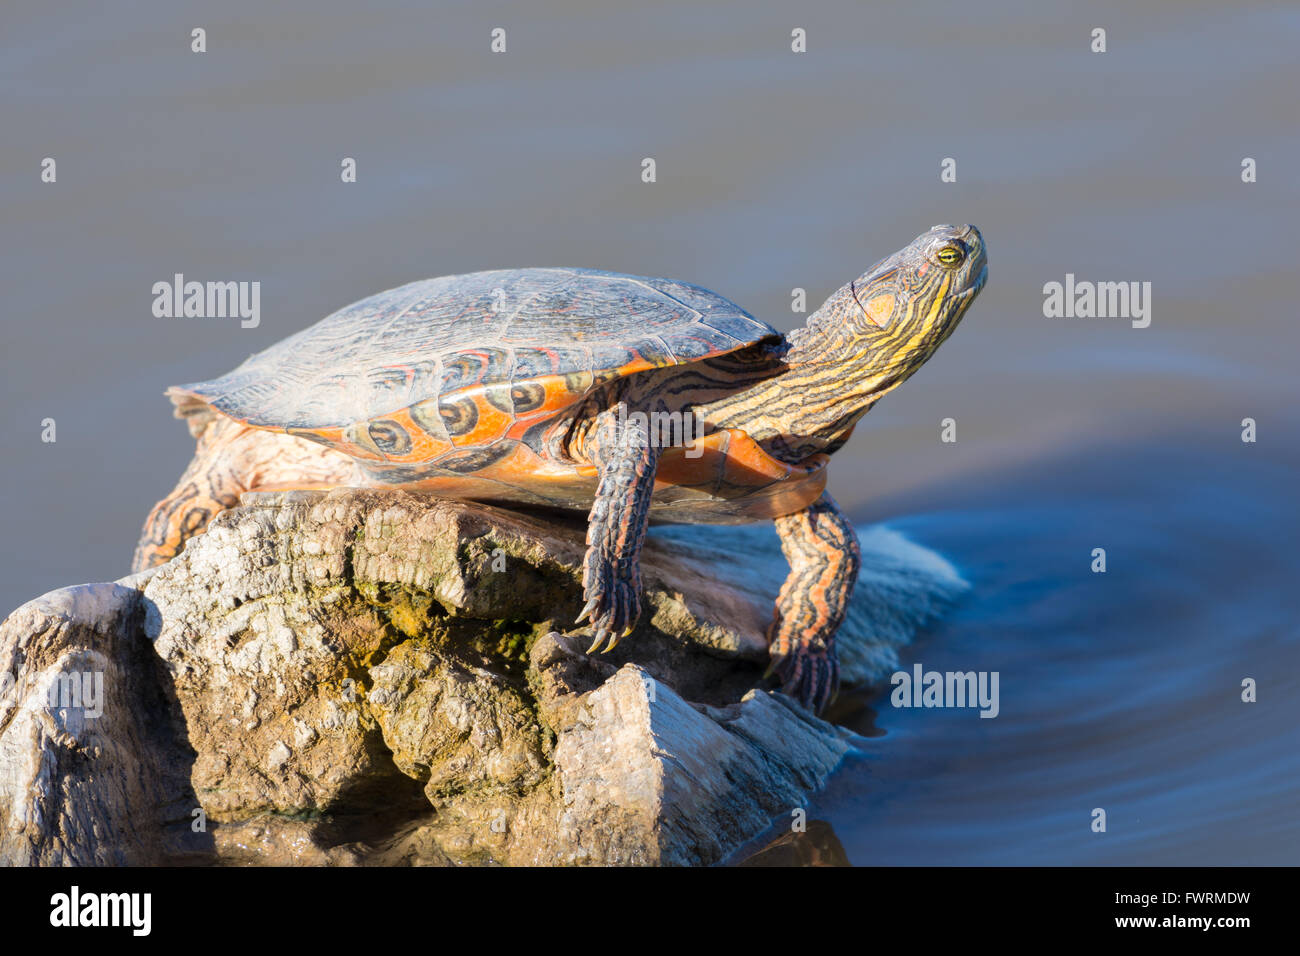 Big Bend Slider, (Trachemys gaigeae gaigeae), basking at Bosque del Apache National Wildlife Refuge, New Mexico, - Stock Image